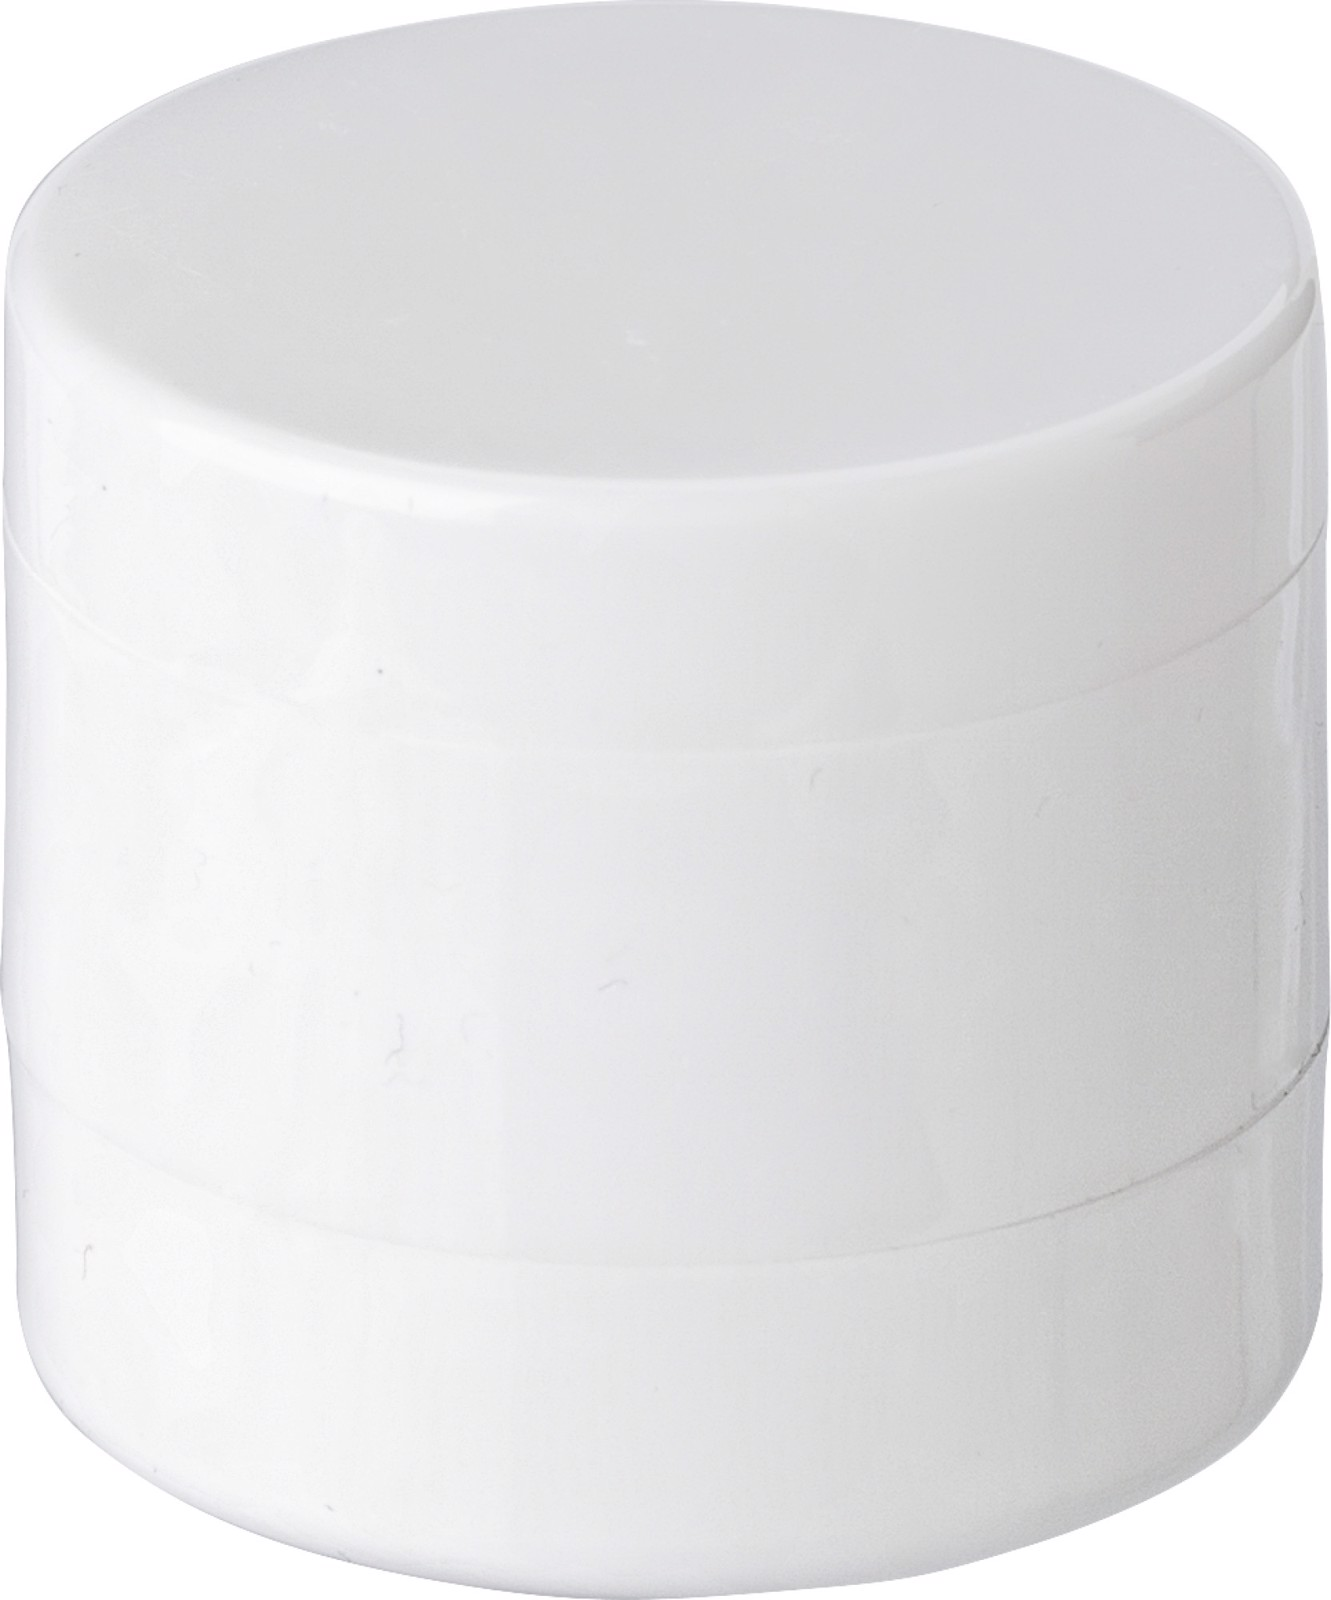 PS holder with mints and lip balm - White